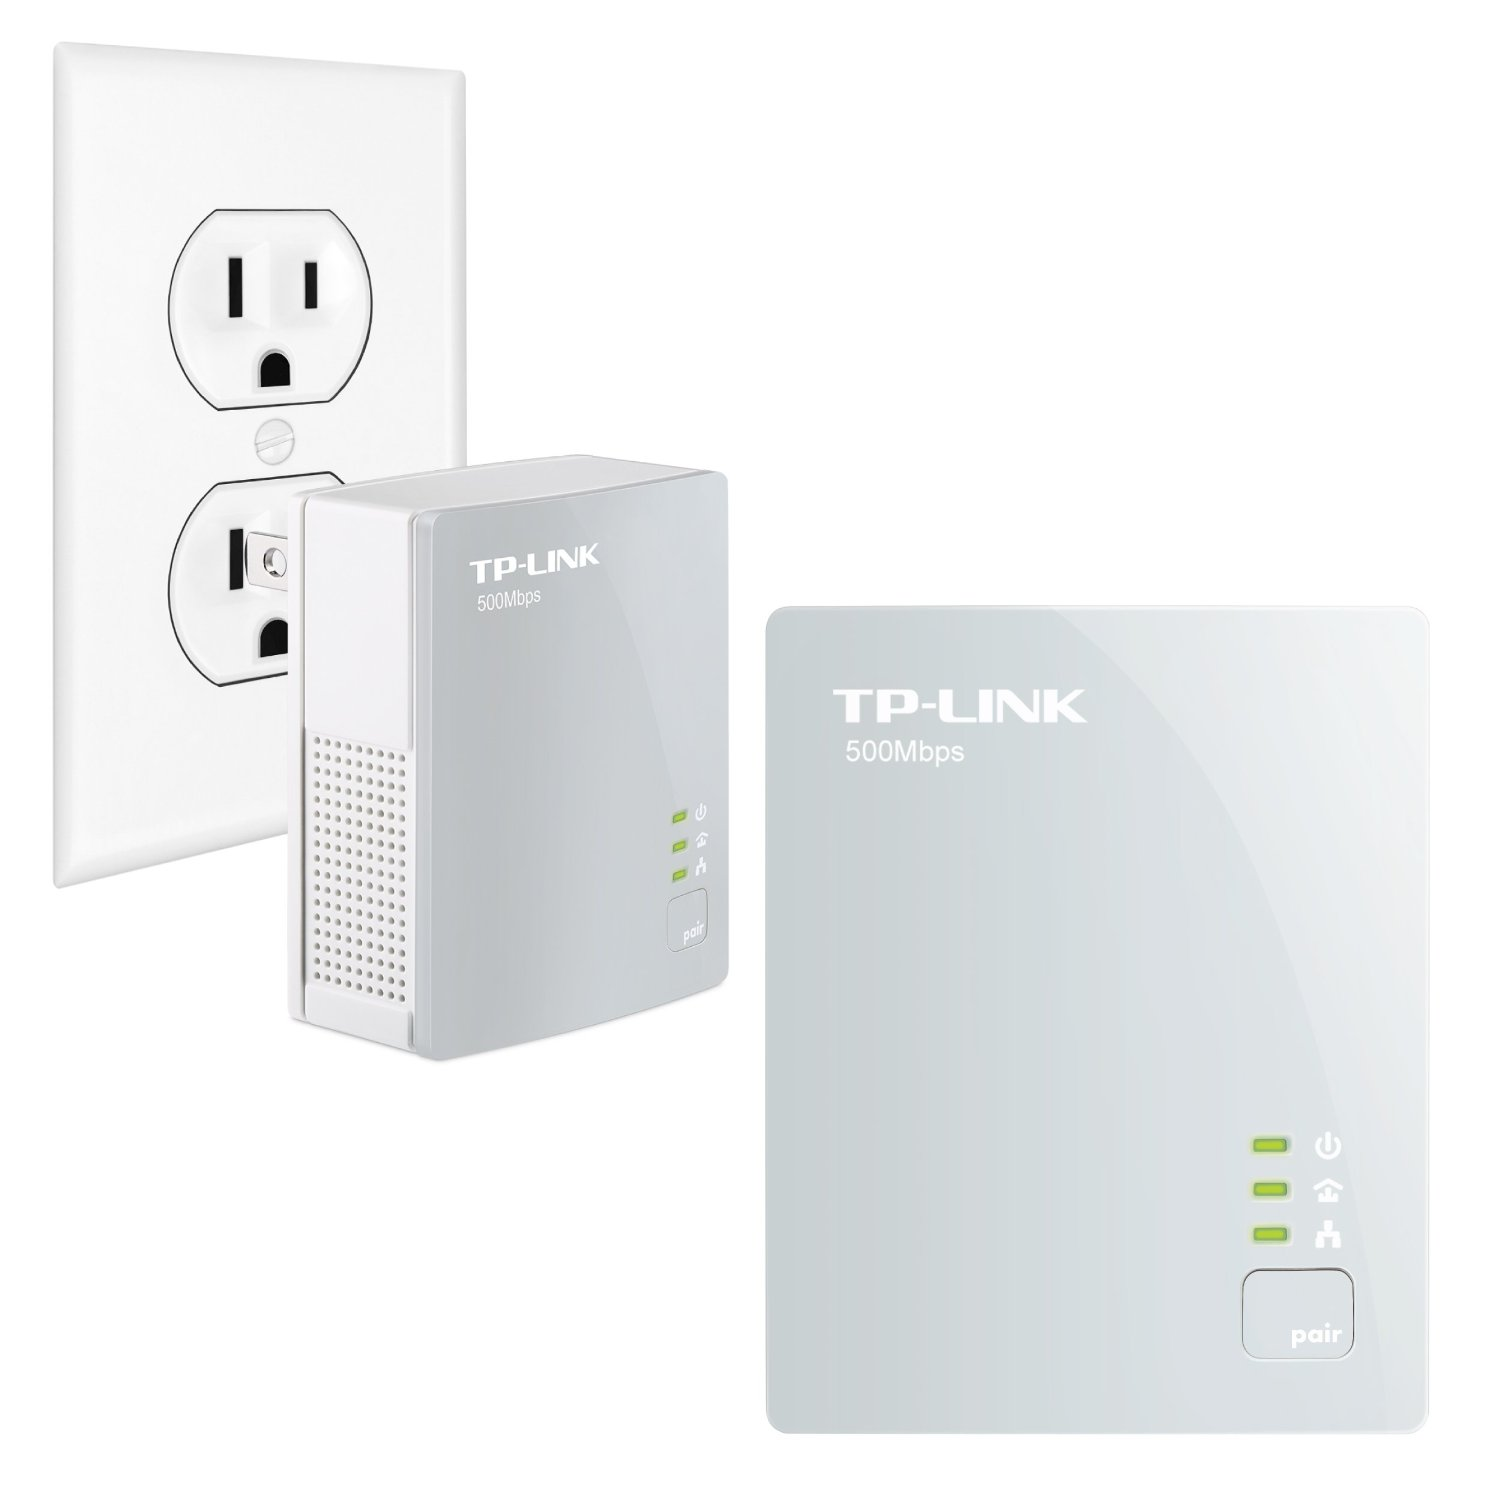 Hardwiring Internet Using Wall Sockets and Powerline Ethernet Adapters